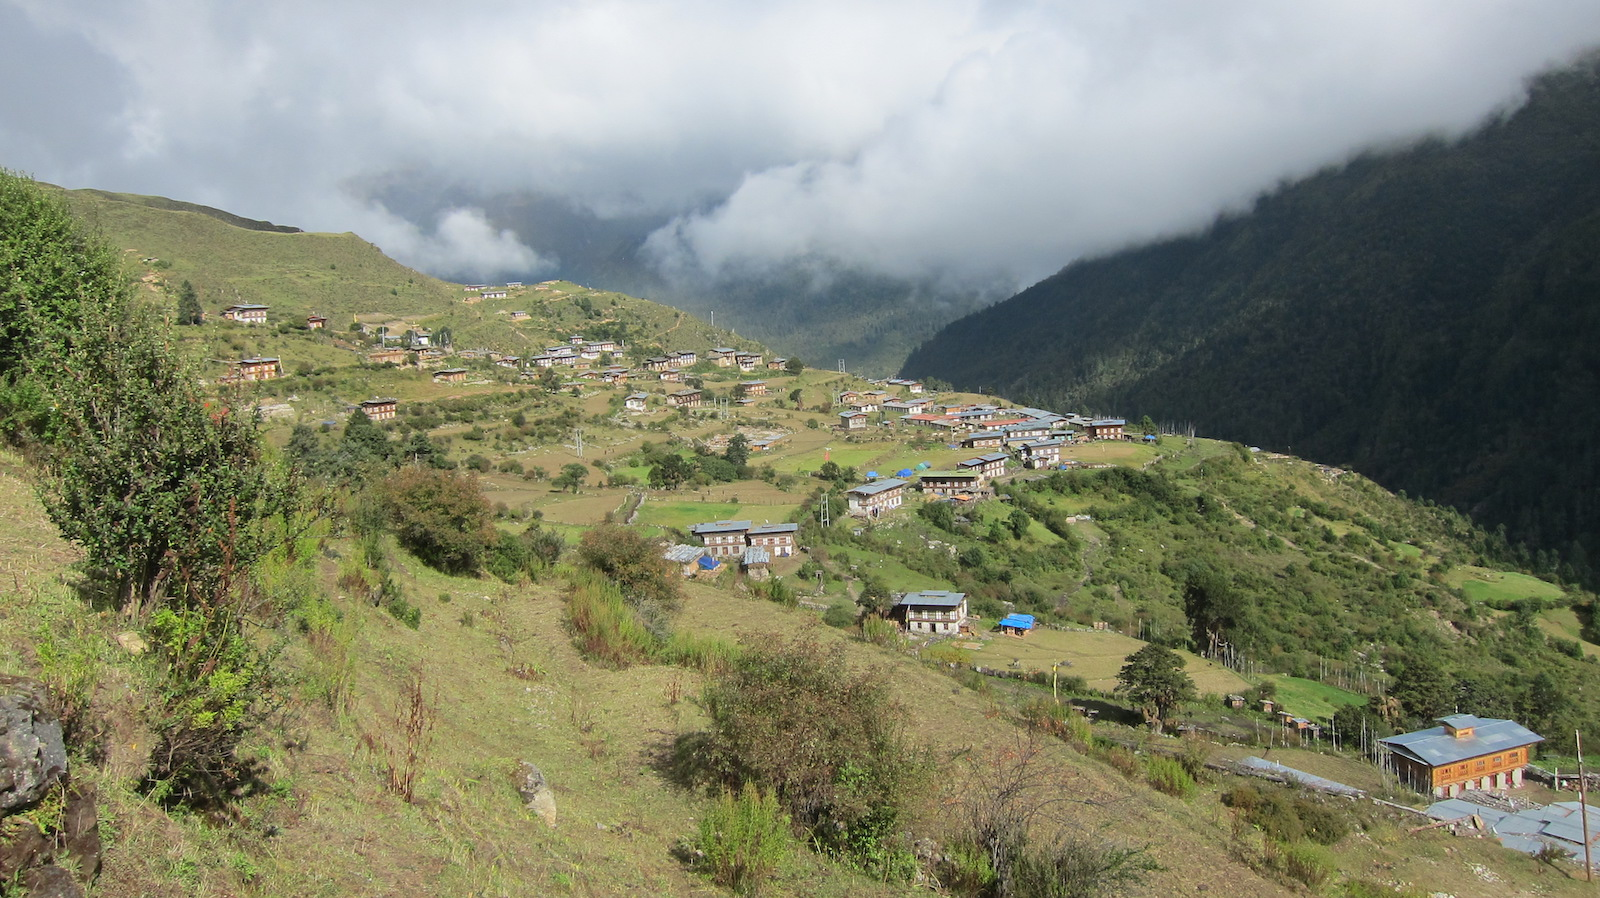 Top of the Gasa District, Bhutan